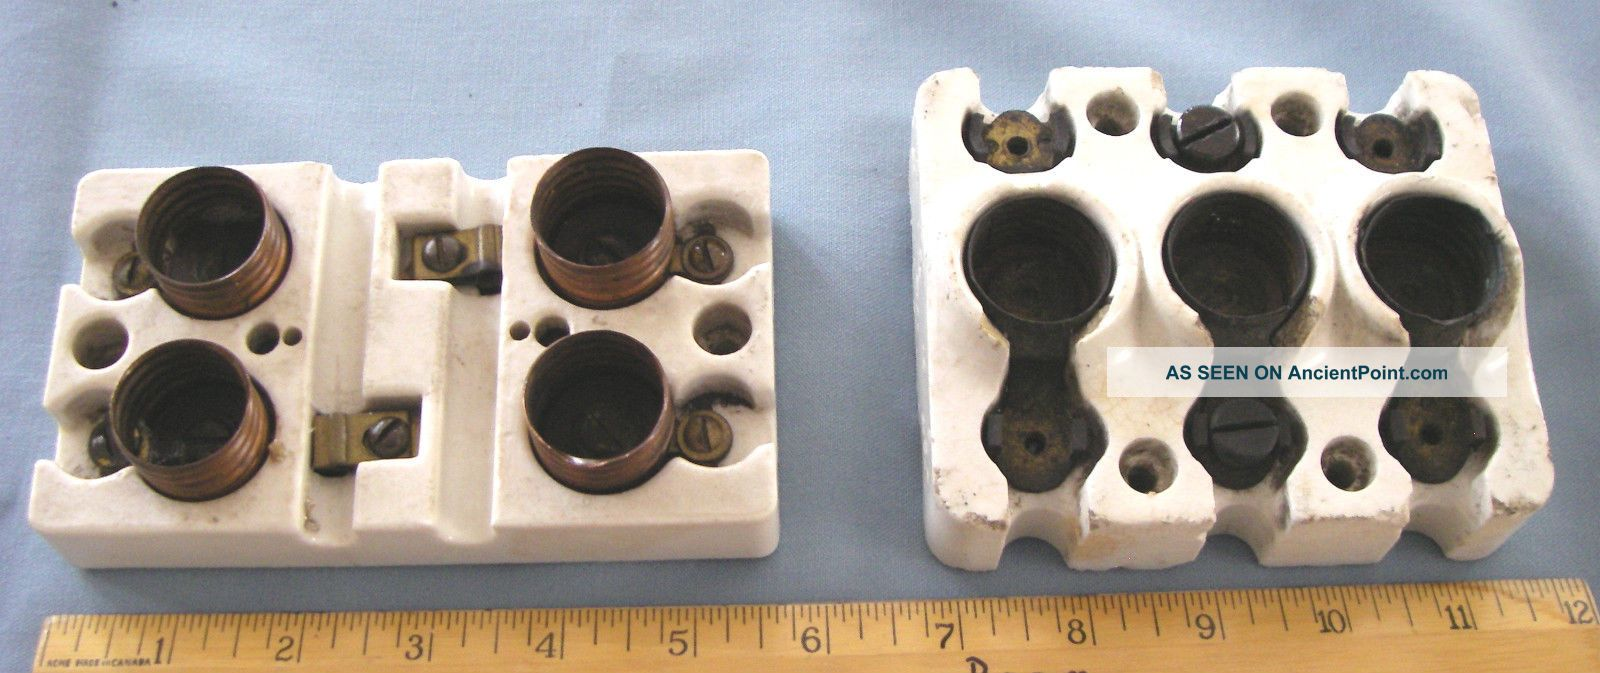 2 Antique Copper Electric Light Sockets Switch Steampunk Frankenstein Porcelain Other Mercantile Antiques photo